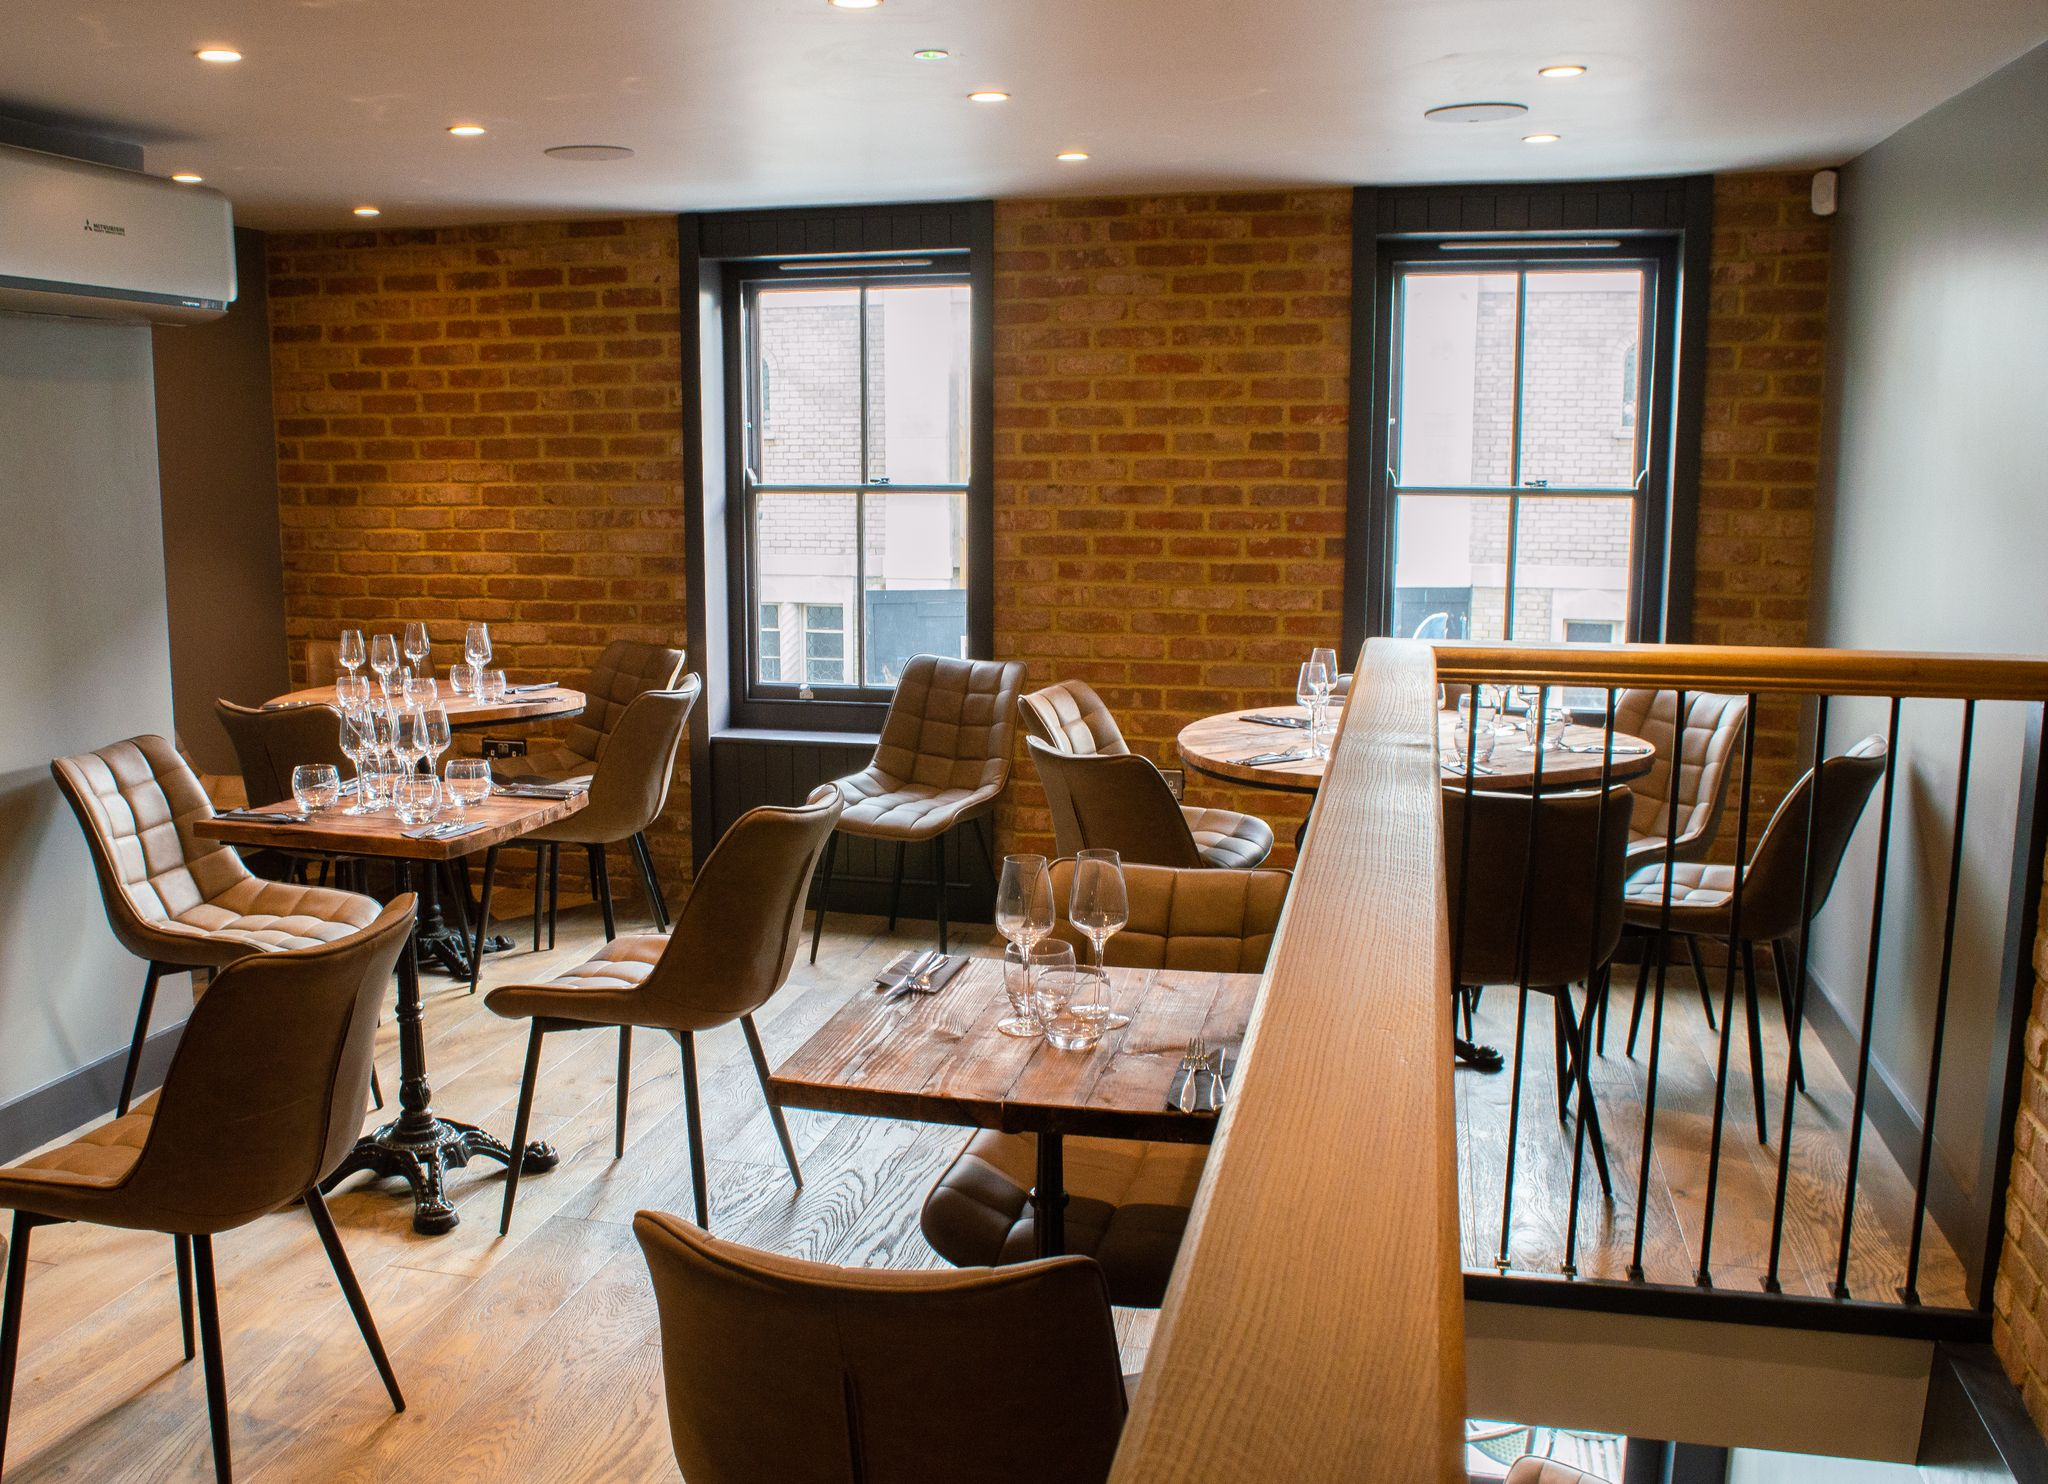 Upstairs At TEN Brighton. A redbrick wall looks out onto a street, wooden tables set with tableware and deep brown leather seats